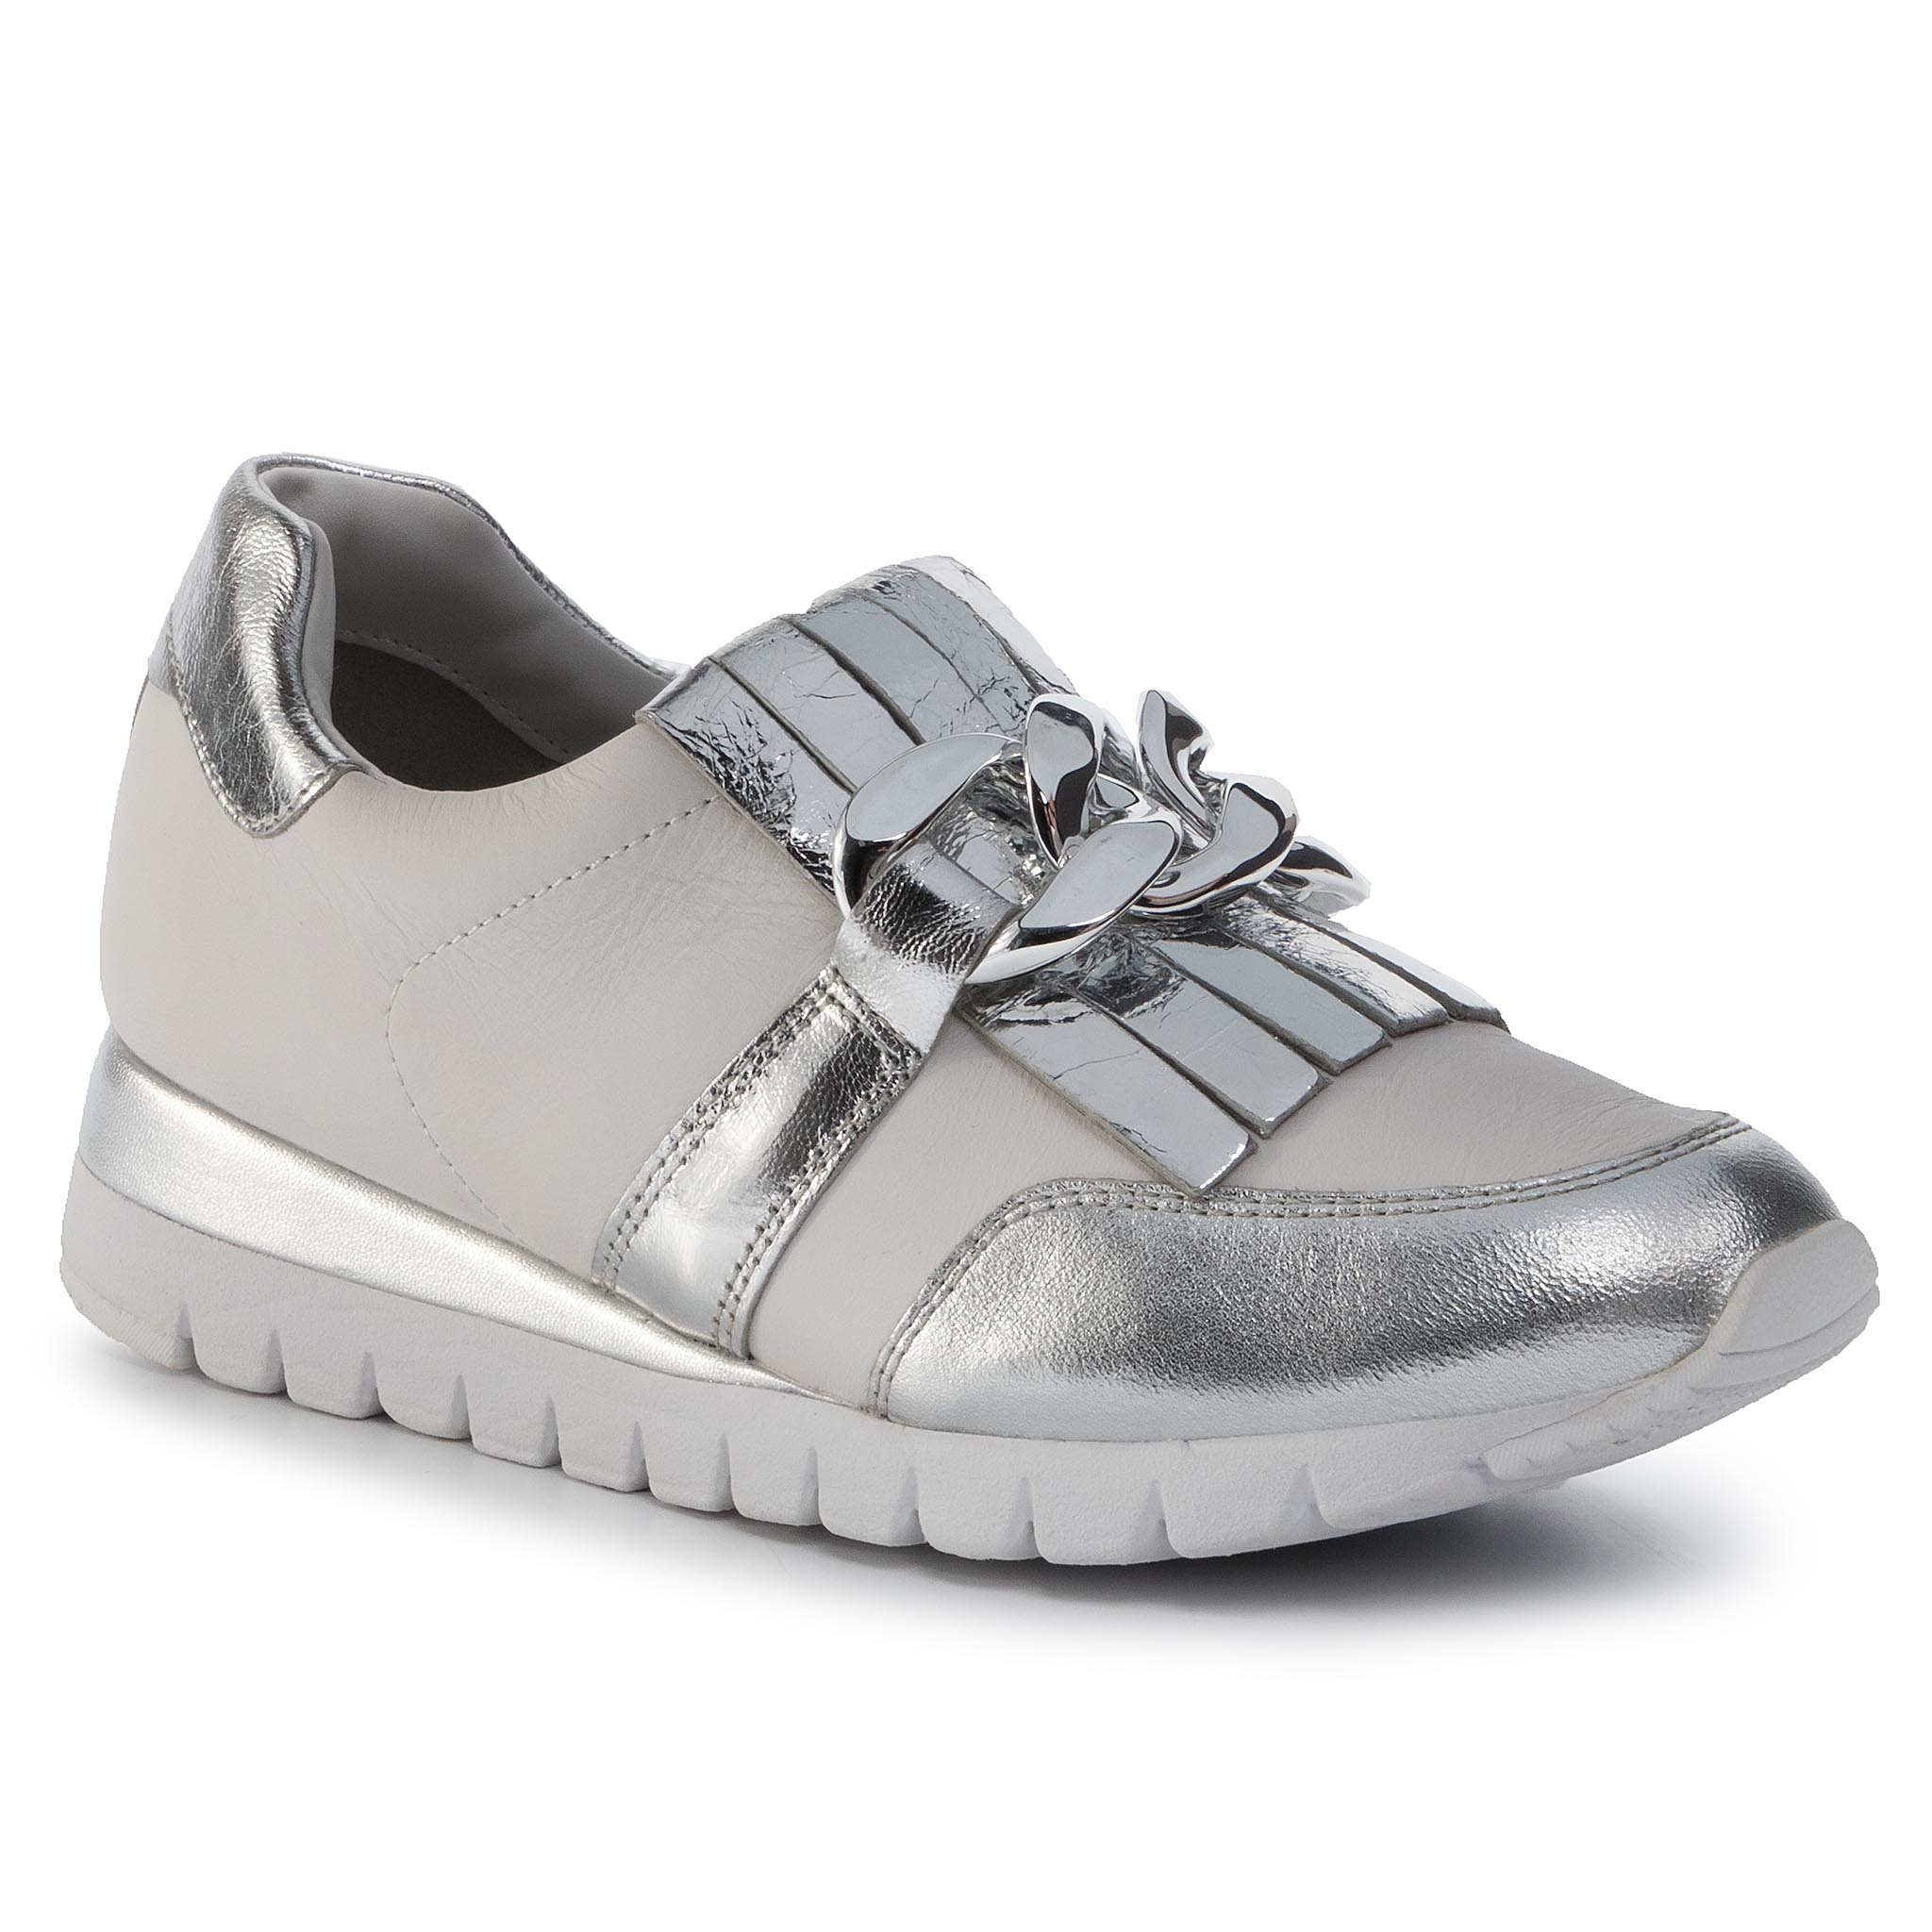 Sneakers CAPRICE - 9-24700-24 Silver/White 930